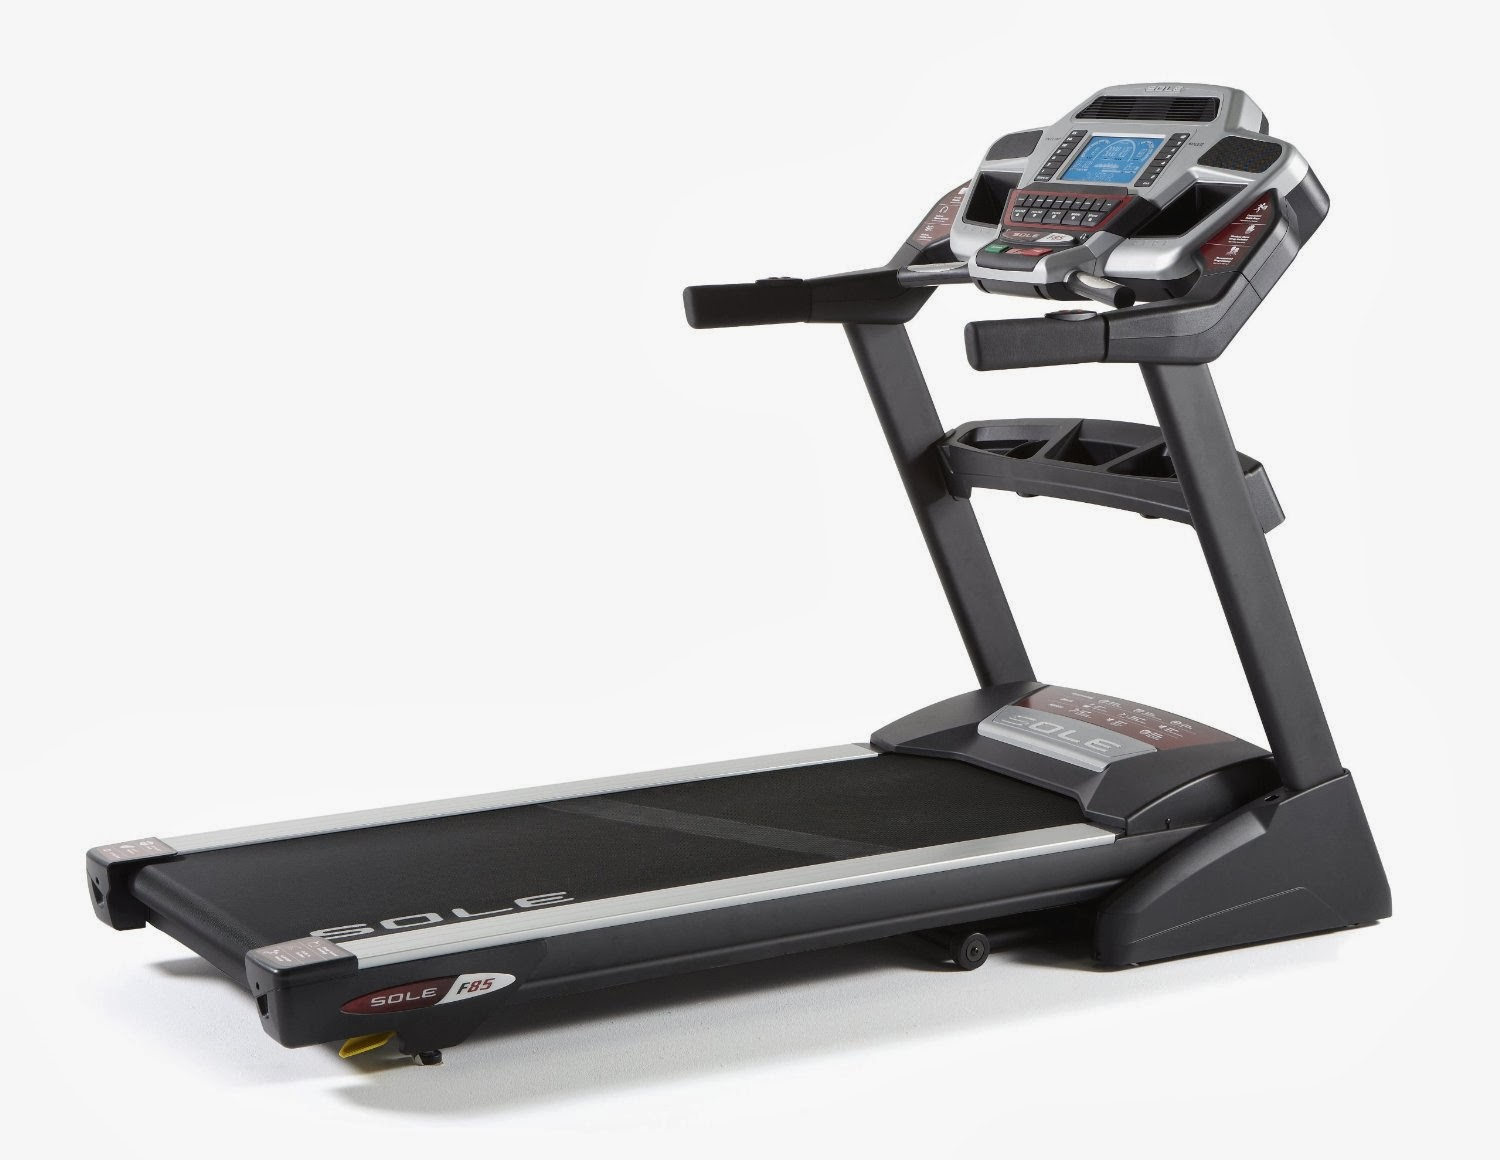 Sole Fitness F85 Fold Treadmill, review of features, see it in action, less impact on joints, buy at low price